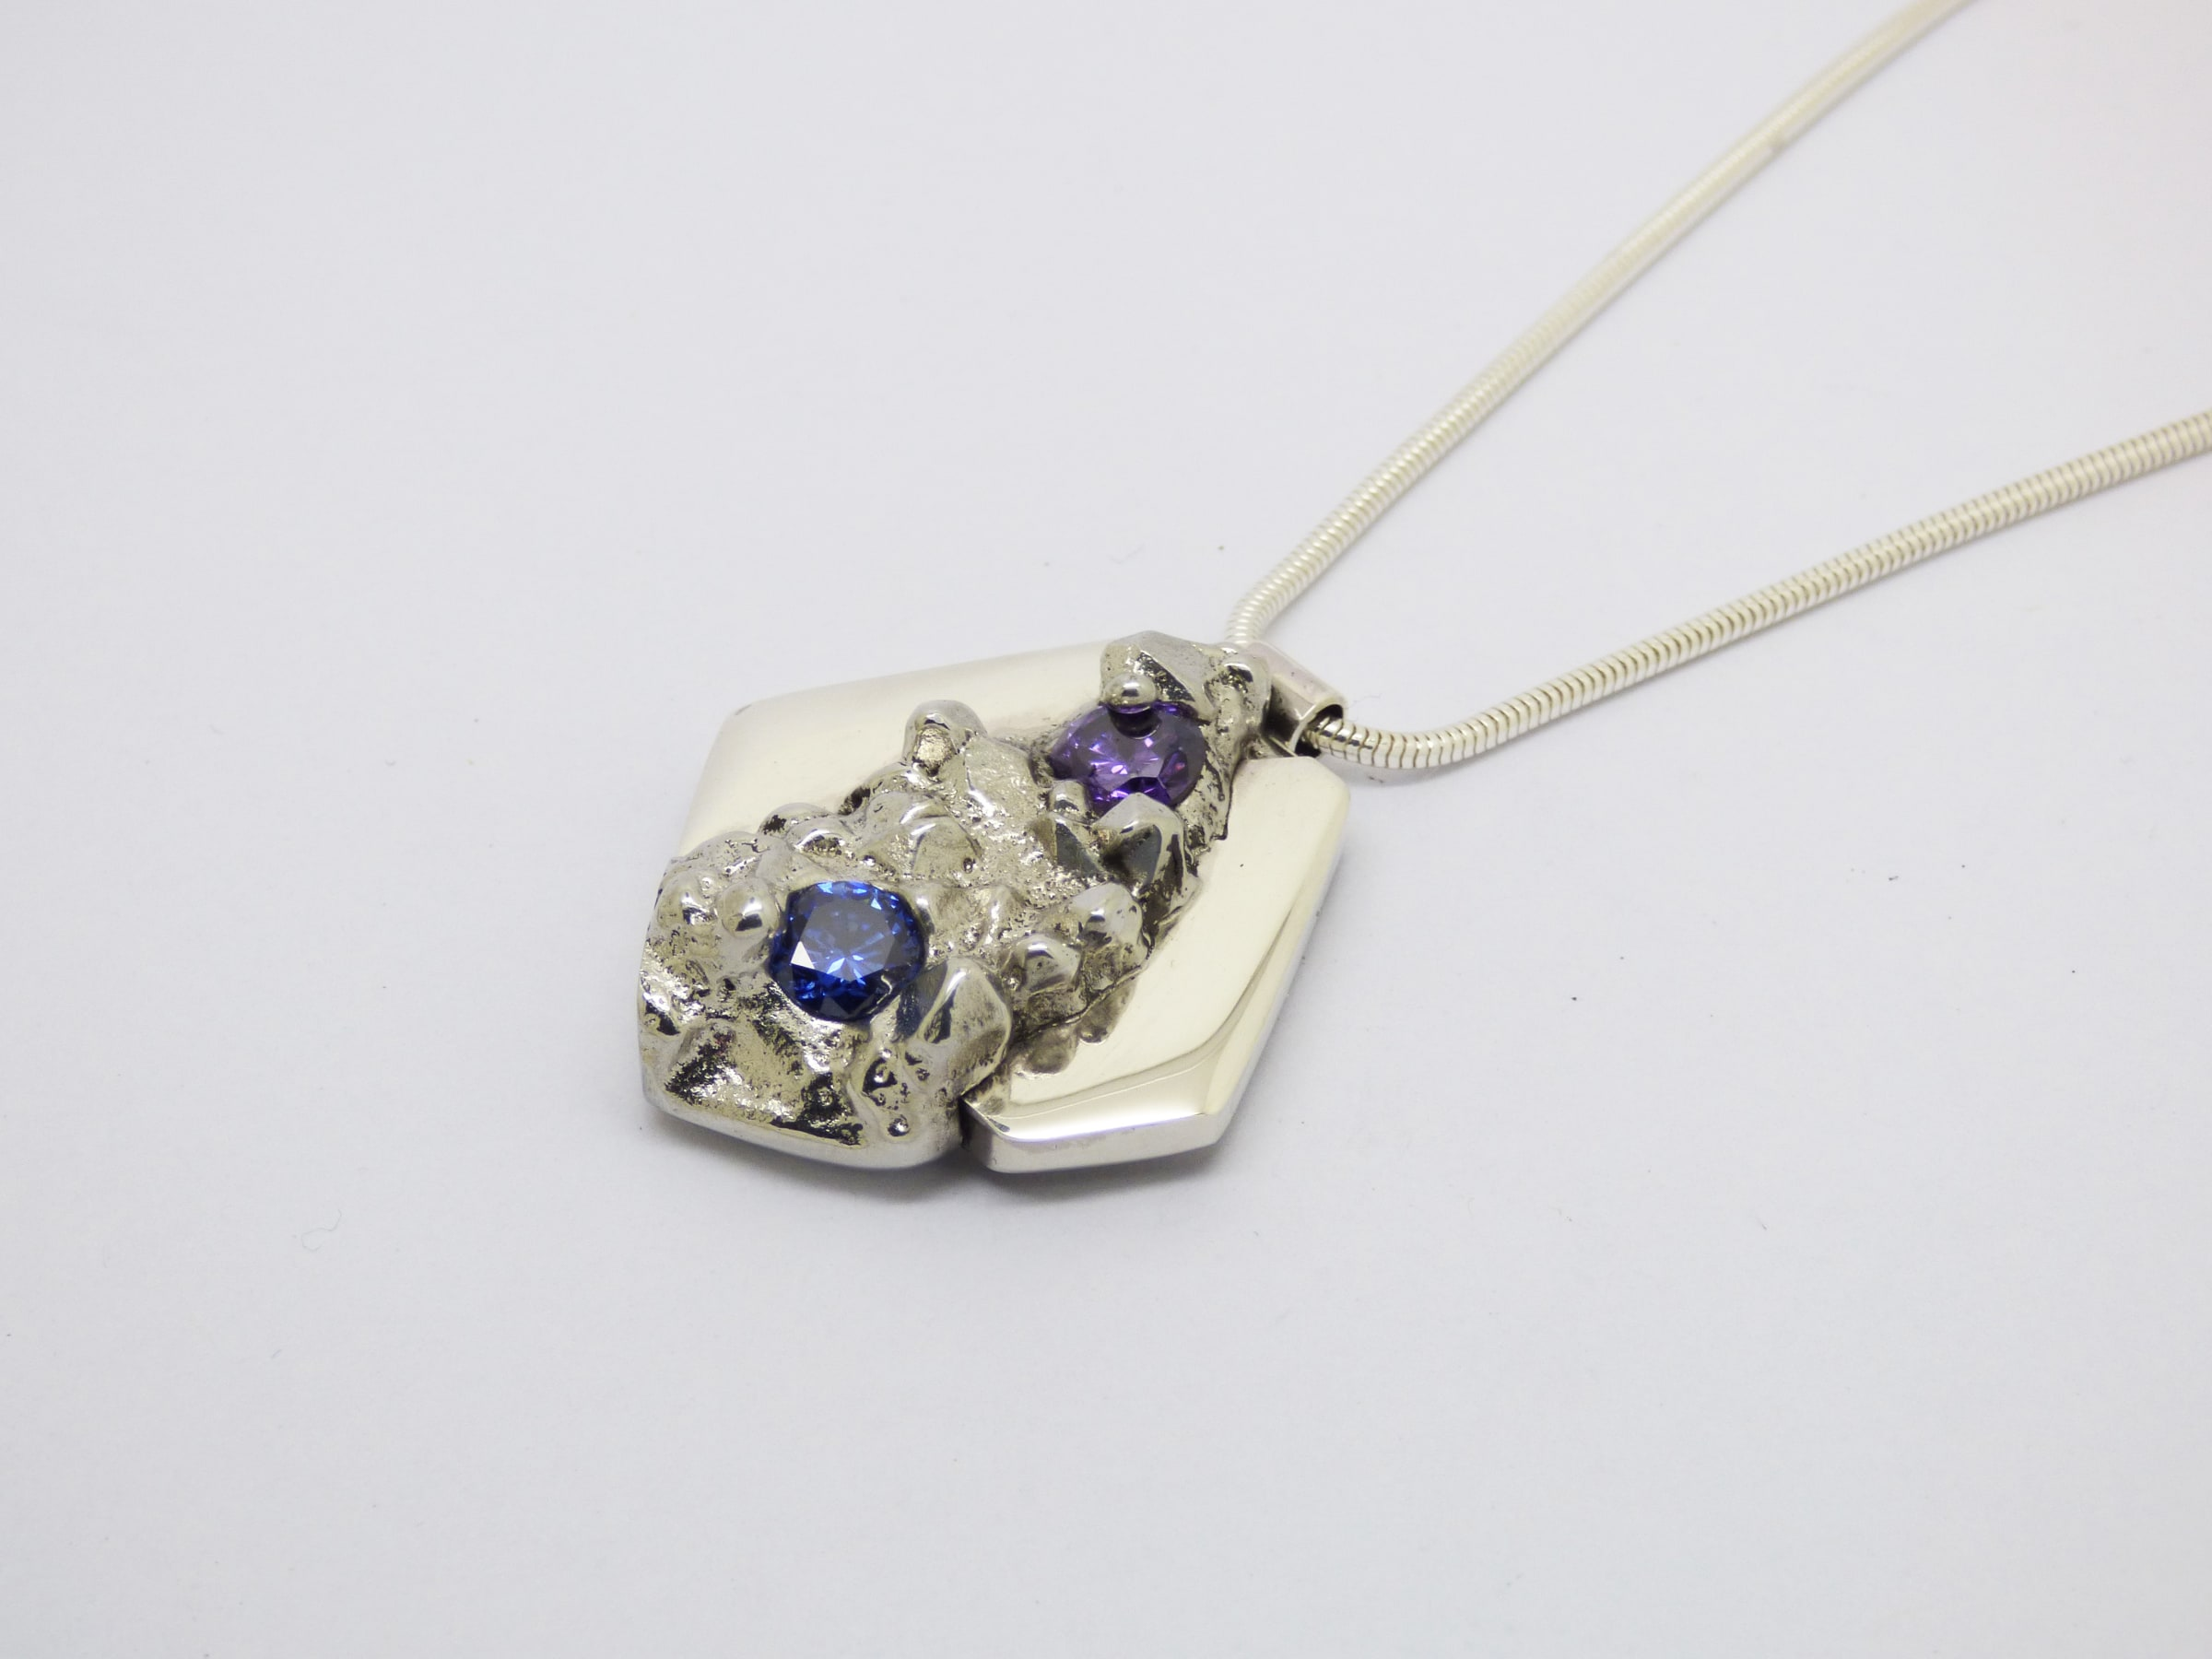 """<span class=""""link fancybox-details-link""""><a href=""""/artists/154-stacey-west/works/4887-stacey-west-found-treasures-pendant-2017/"""">View Detail Page</a></span><div class=""""artist""""><strong>Stacey West</strong></div> <div class=""""title""""><em>'Found Treasures' Pendant </em>, 2017</div> <div class=""""medium"""">Pewter and silver pendant on sterling silver chain with purple cubic zirconia. Large (long chain) 20"""" </div><div class=""""price"""">£155.00</div><div class=""""copyright_line"""">Copyright The Artist</div>"""